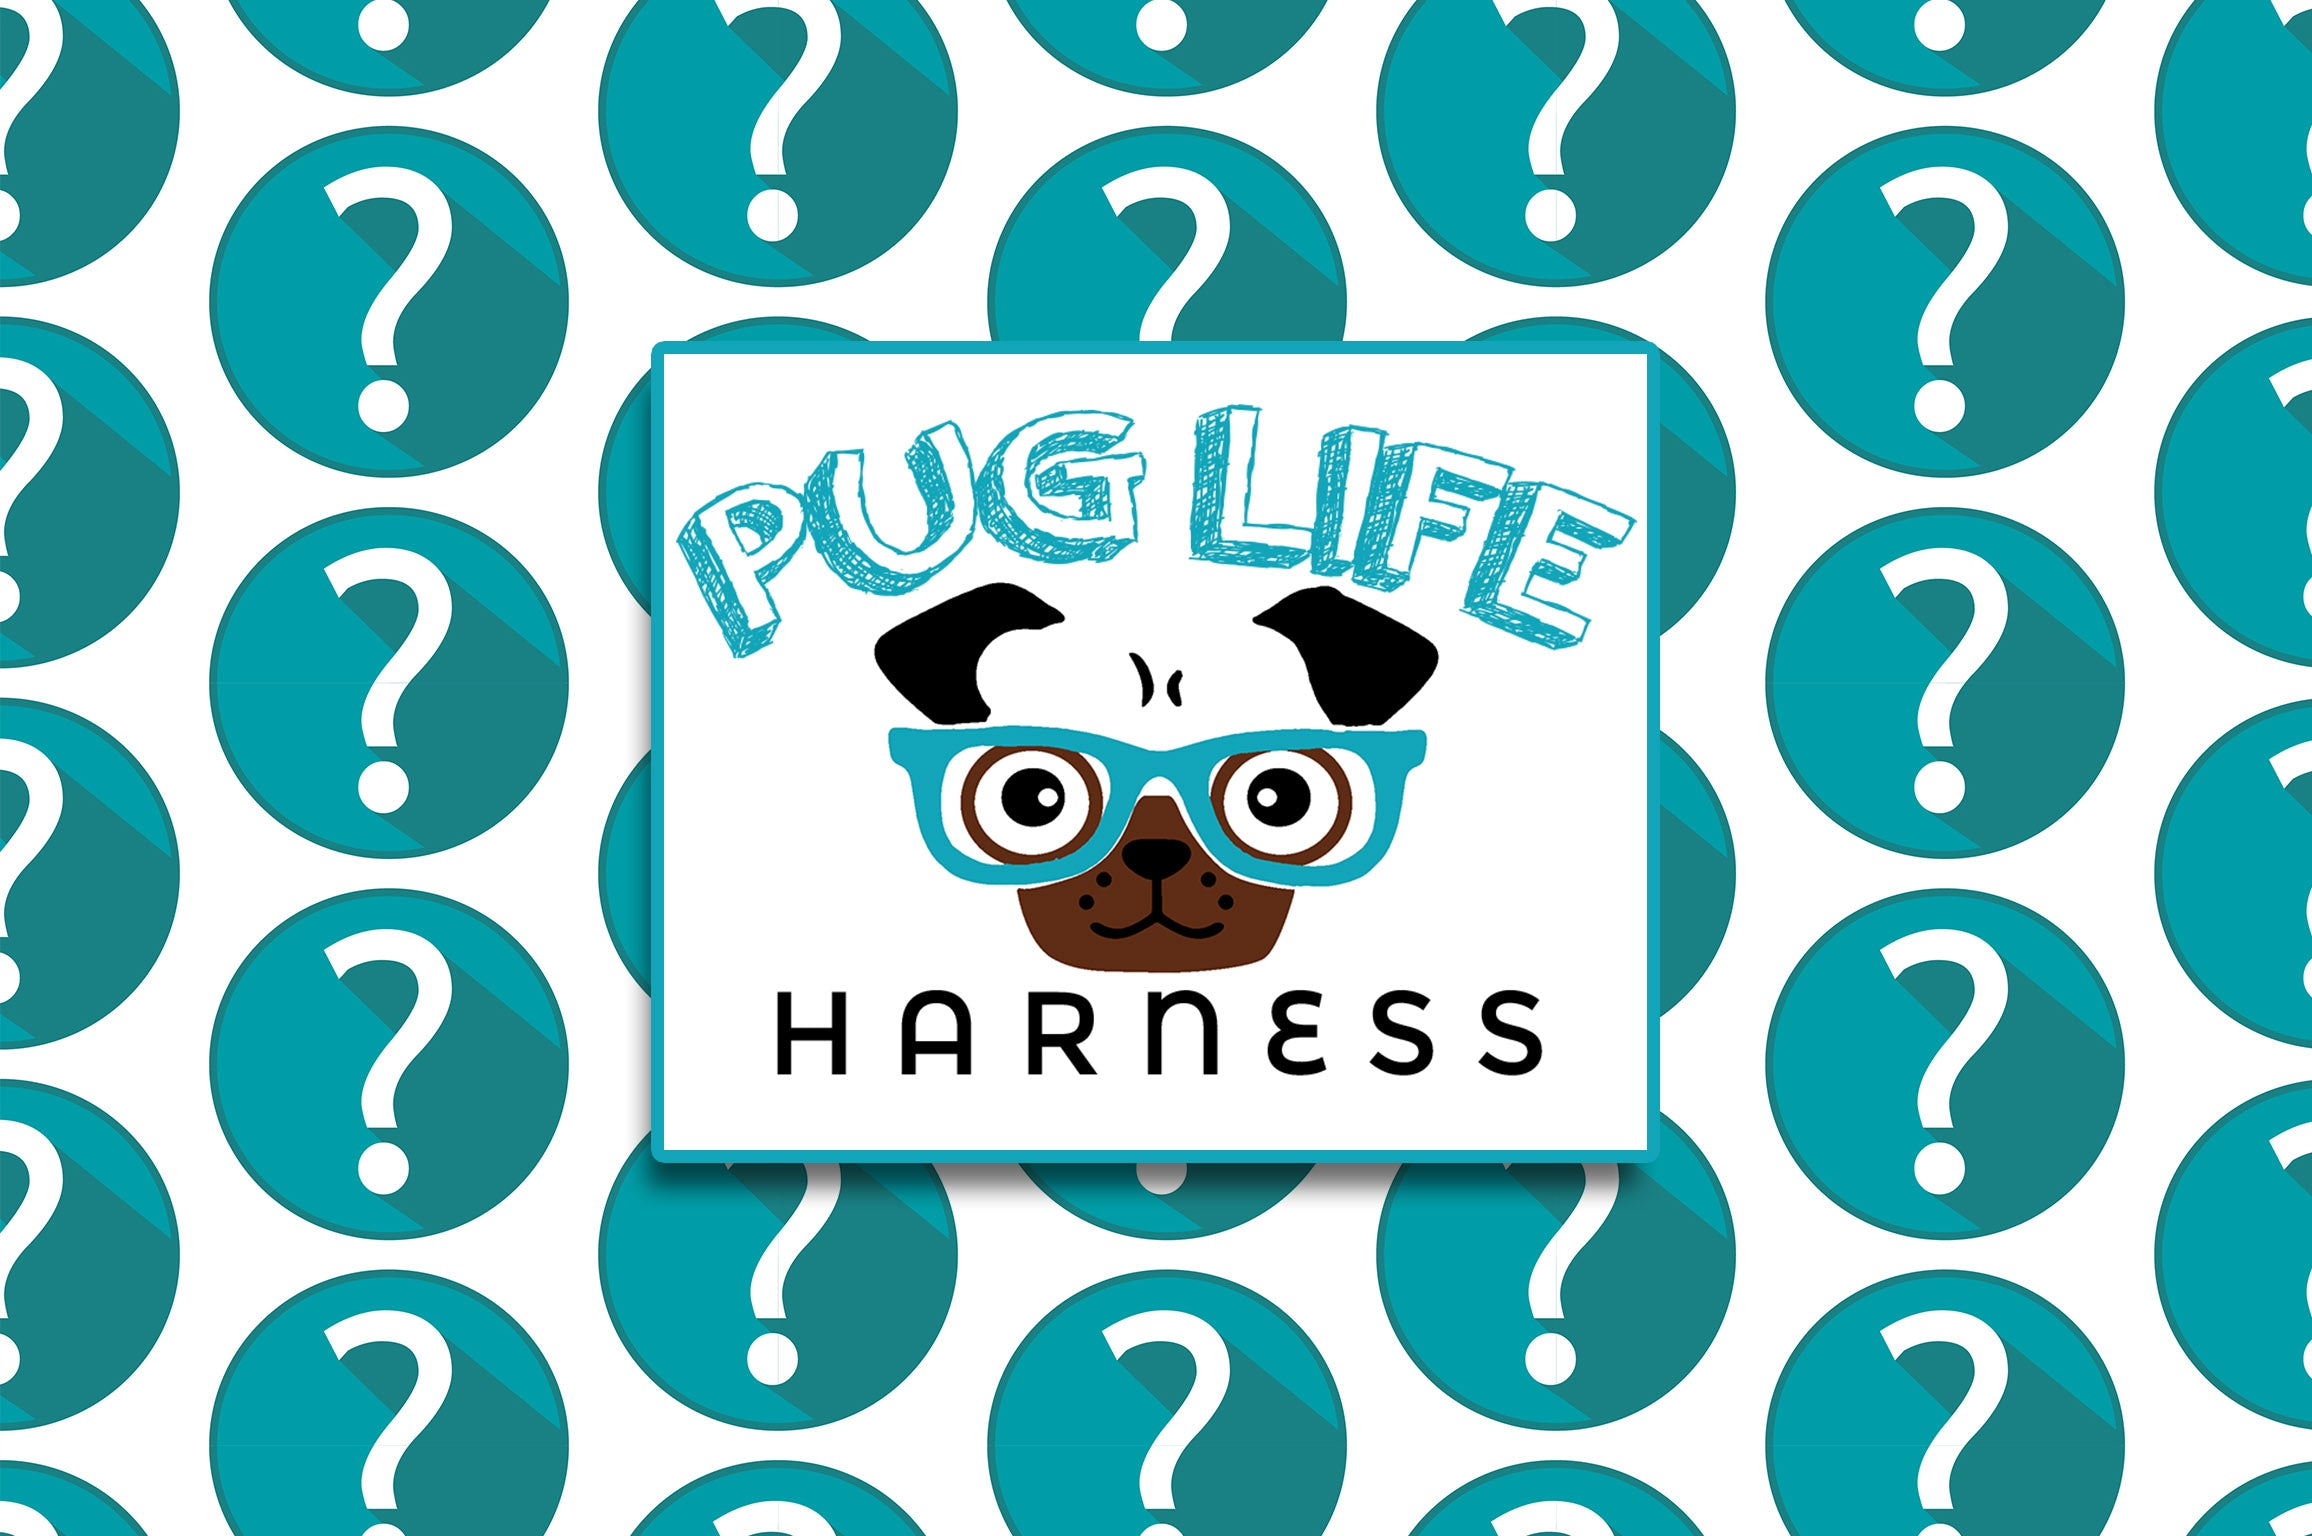 Pug Life Harness: Is it available on Amazon?